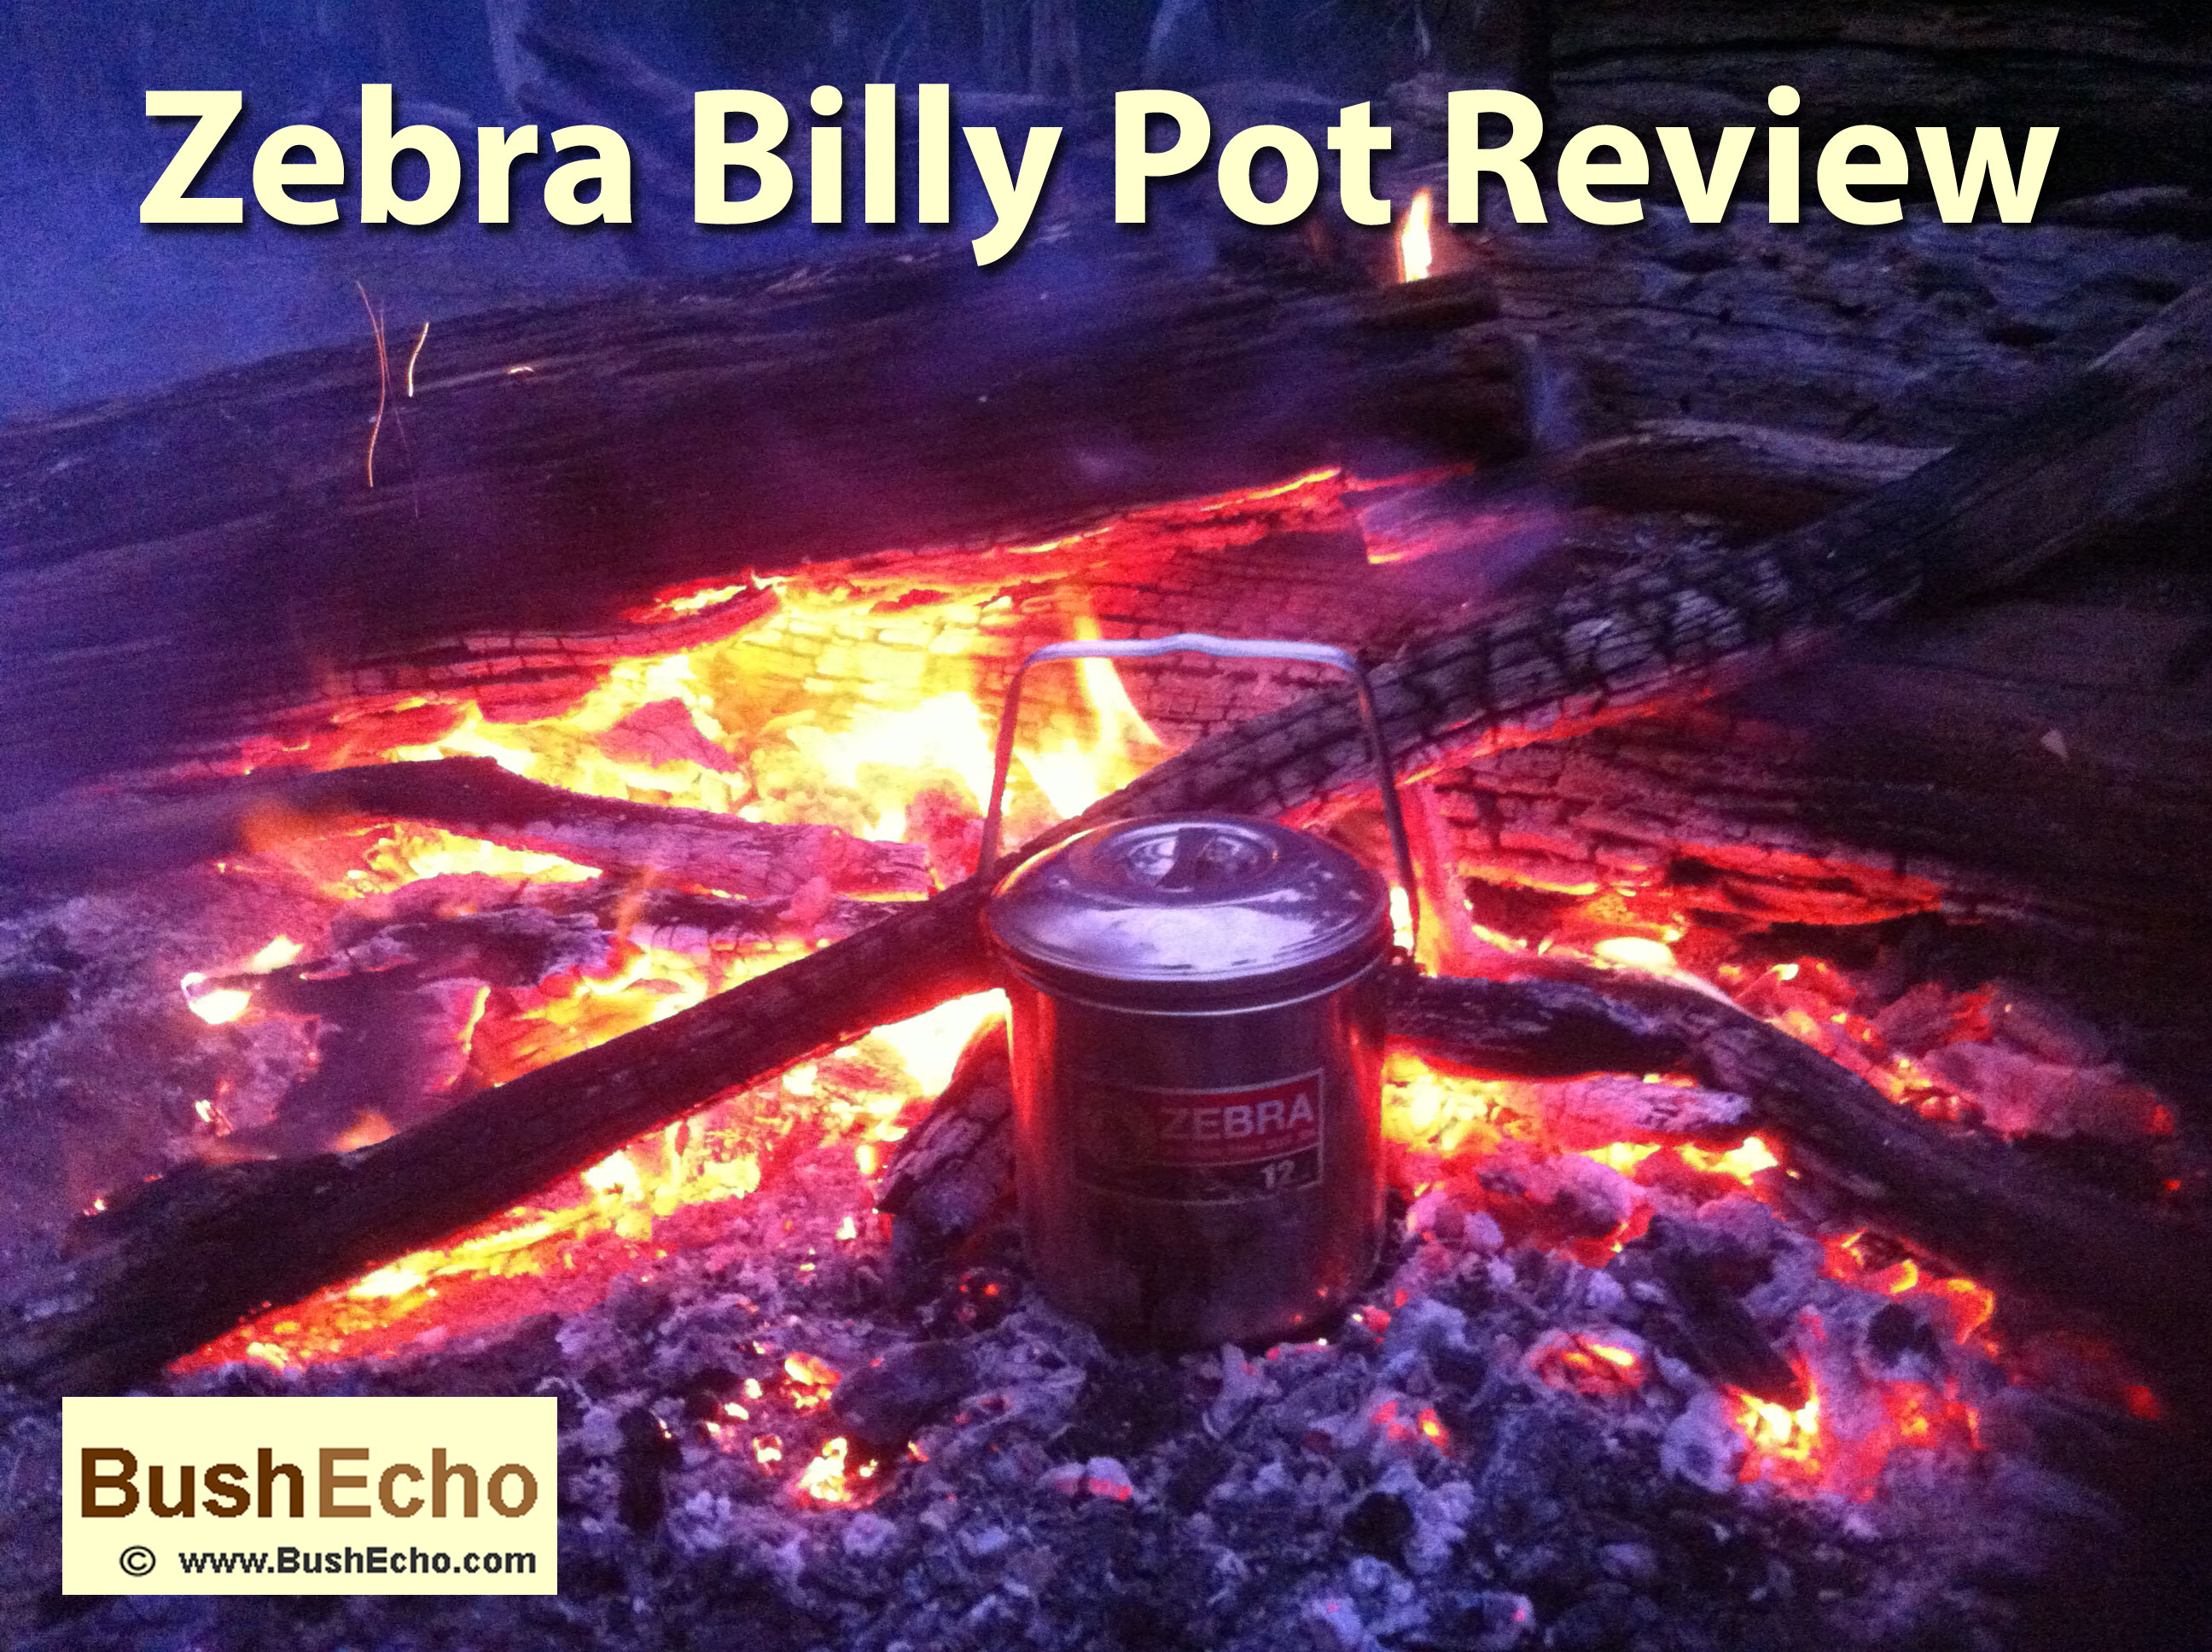 Zebra Billy Pot Review